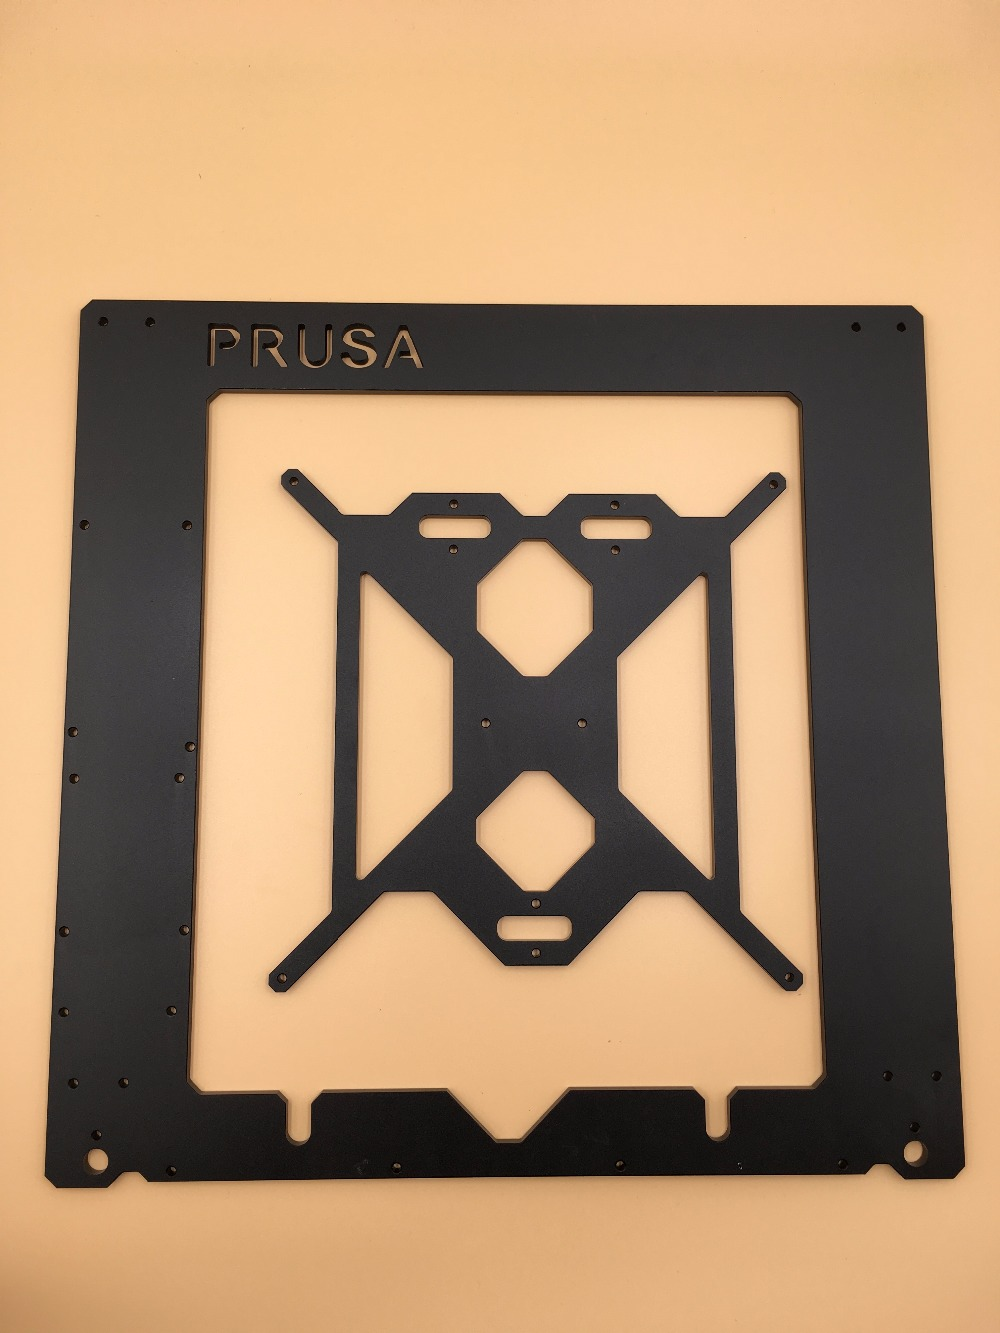 Prusa i3 Rework 3D printer aluminum frame kit RepRap Prusa i3 aluminum frame 3D Printer DIY 6 mm natura siberica лифтинг крем для кожи вокруг глаз орлиный взгляд объем 30 мл